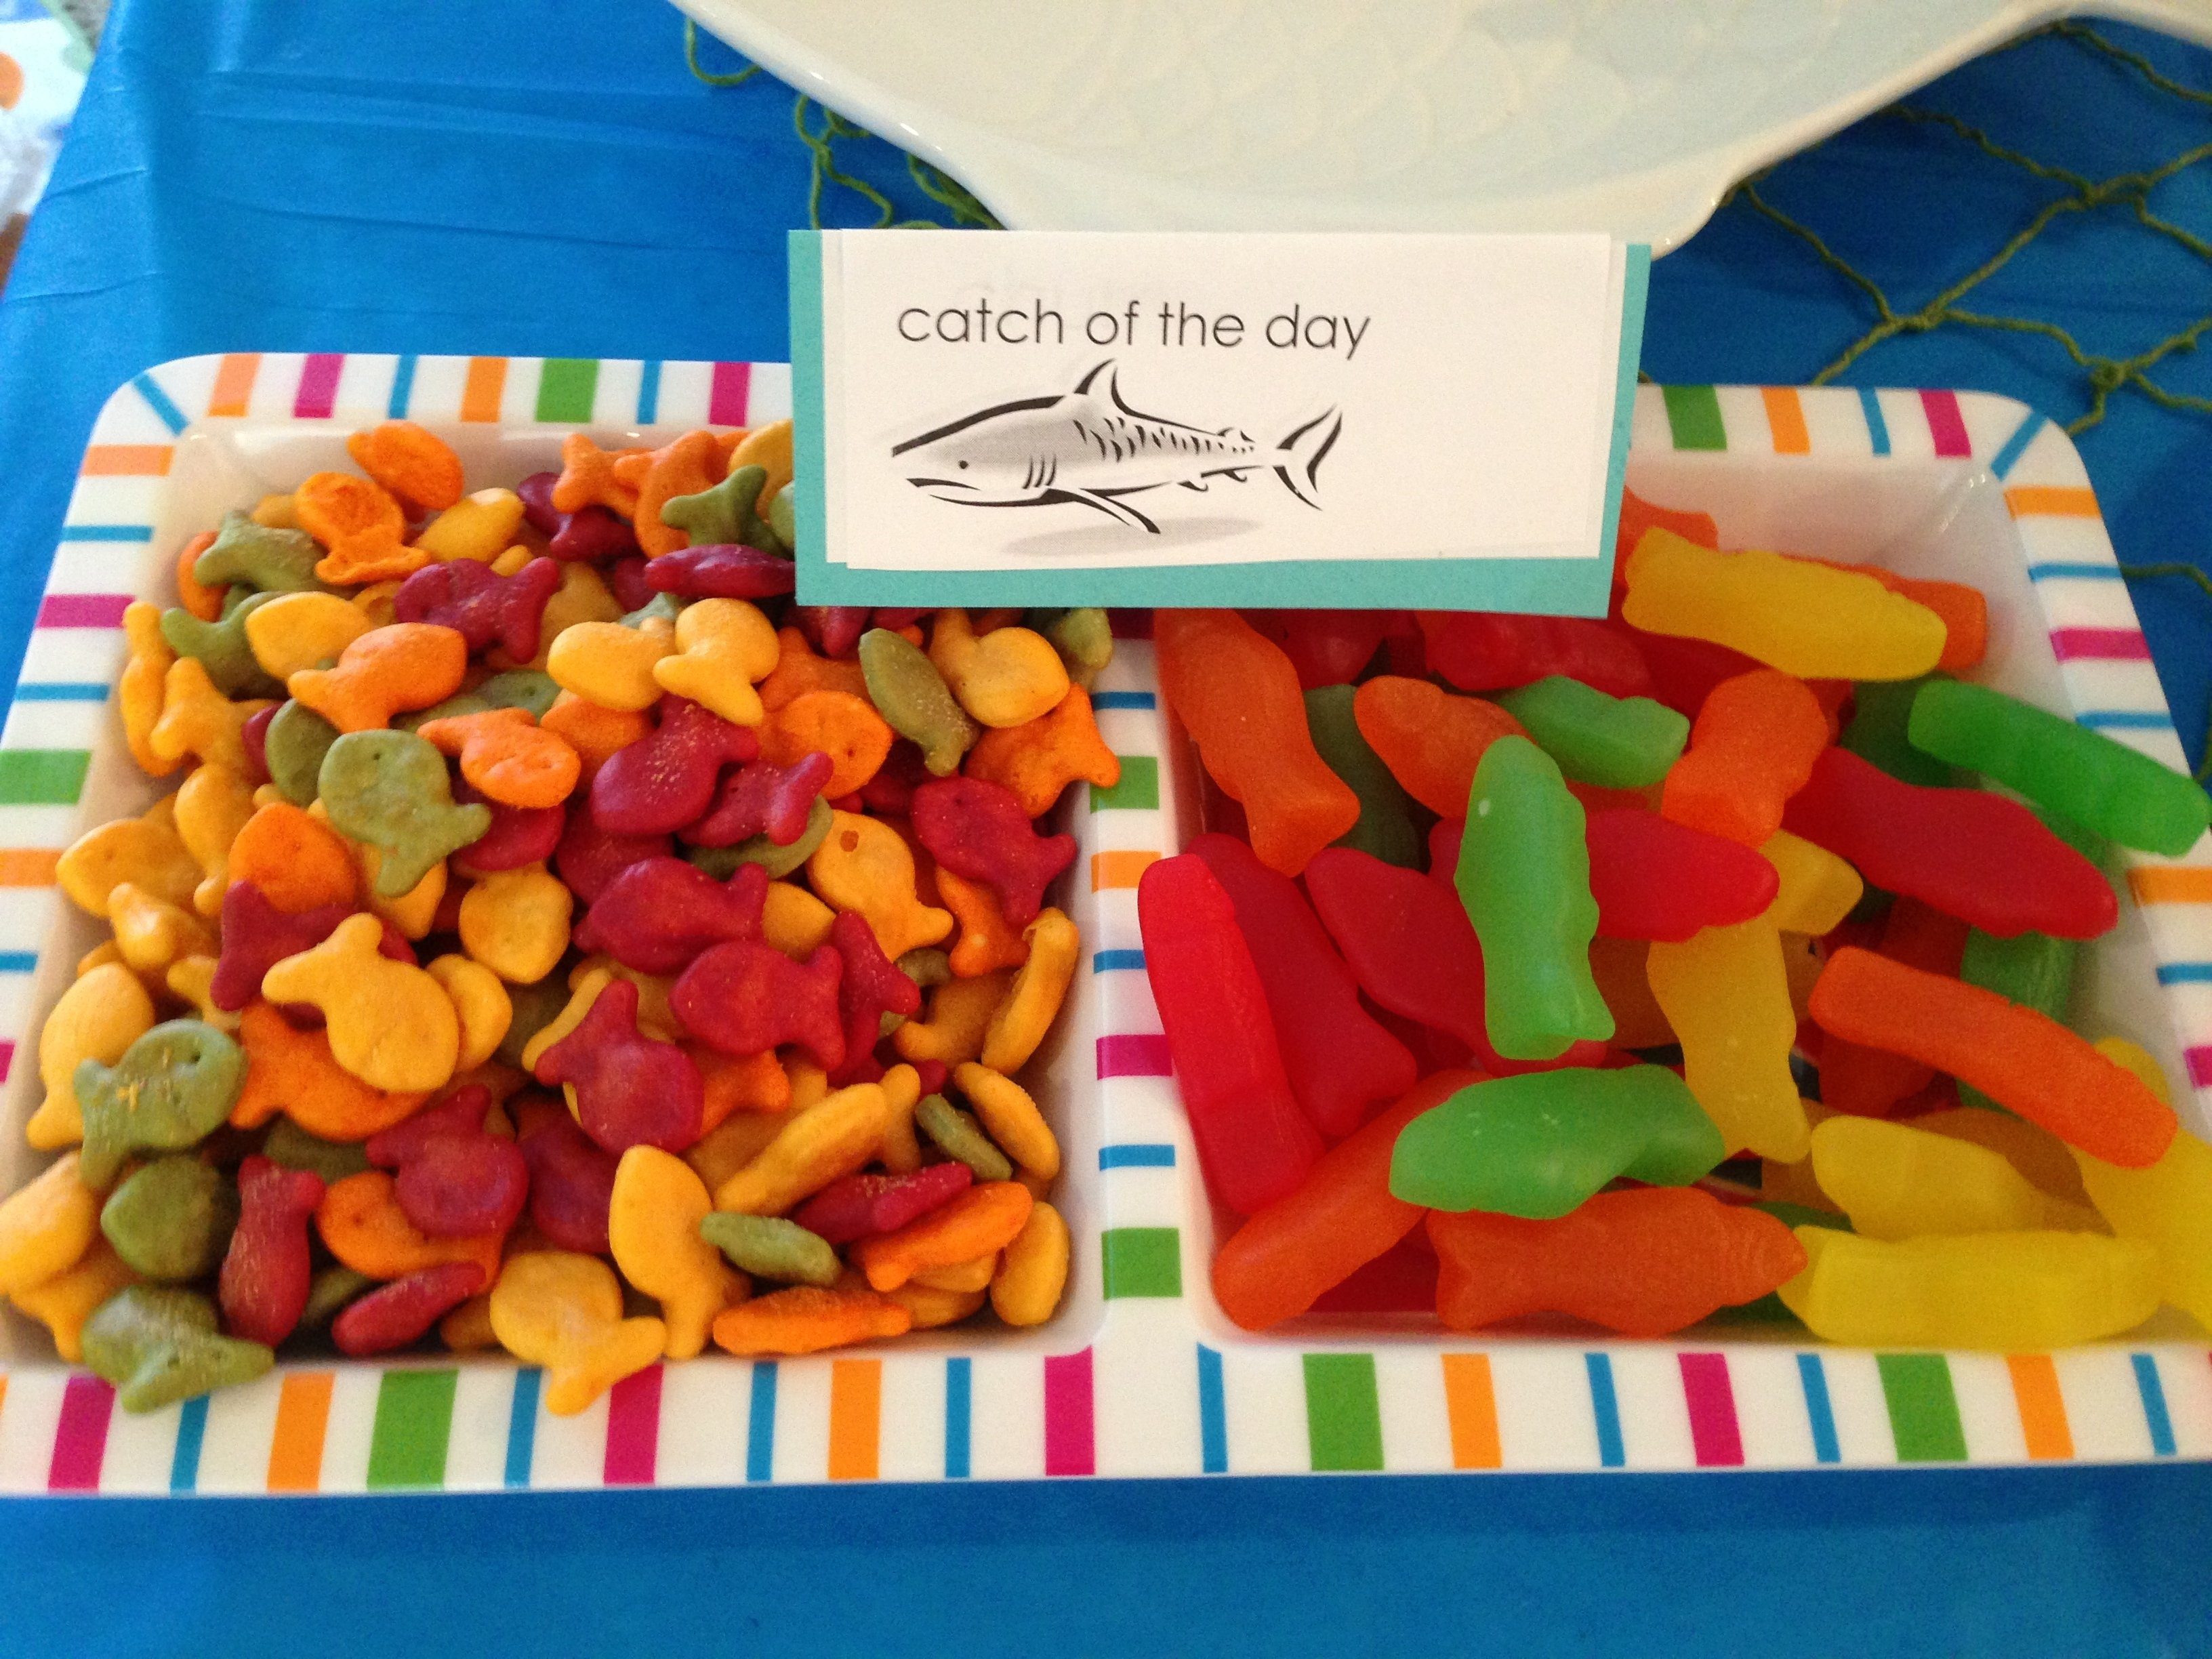 10 Stylish Pool Party Food Ideas For Kids school of sharks shark party 1st birthday beach party pool party 2020